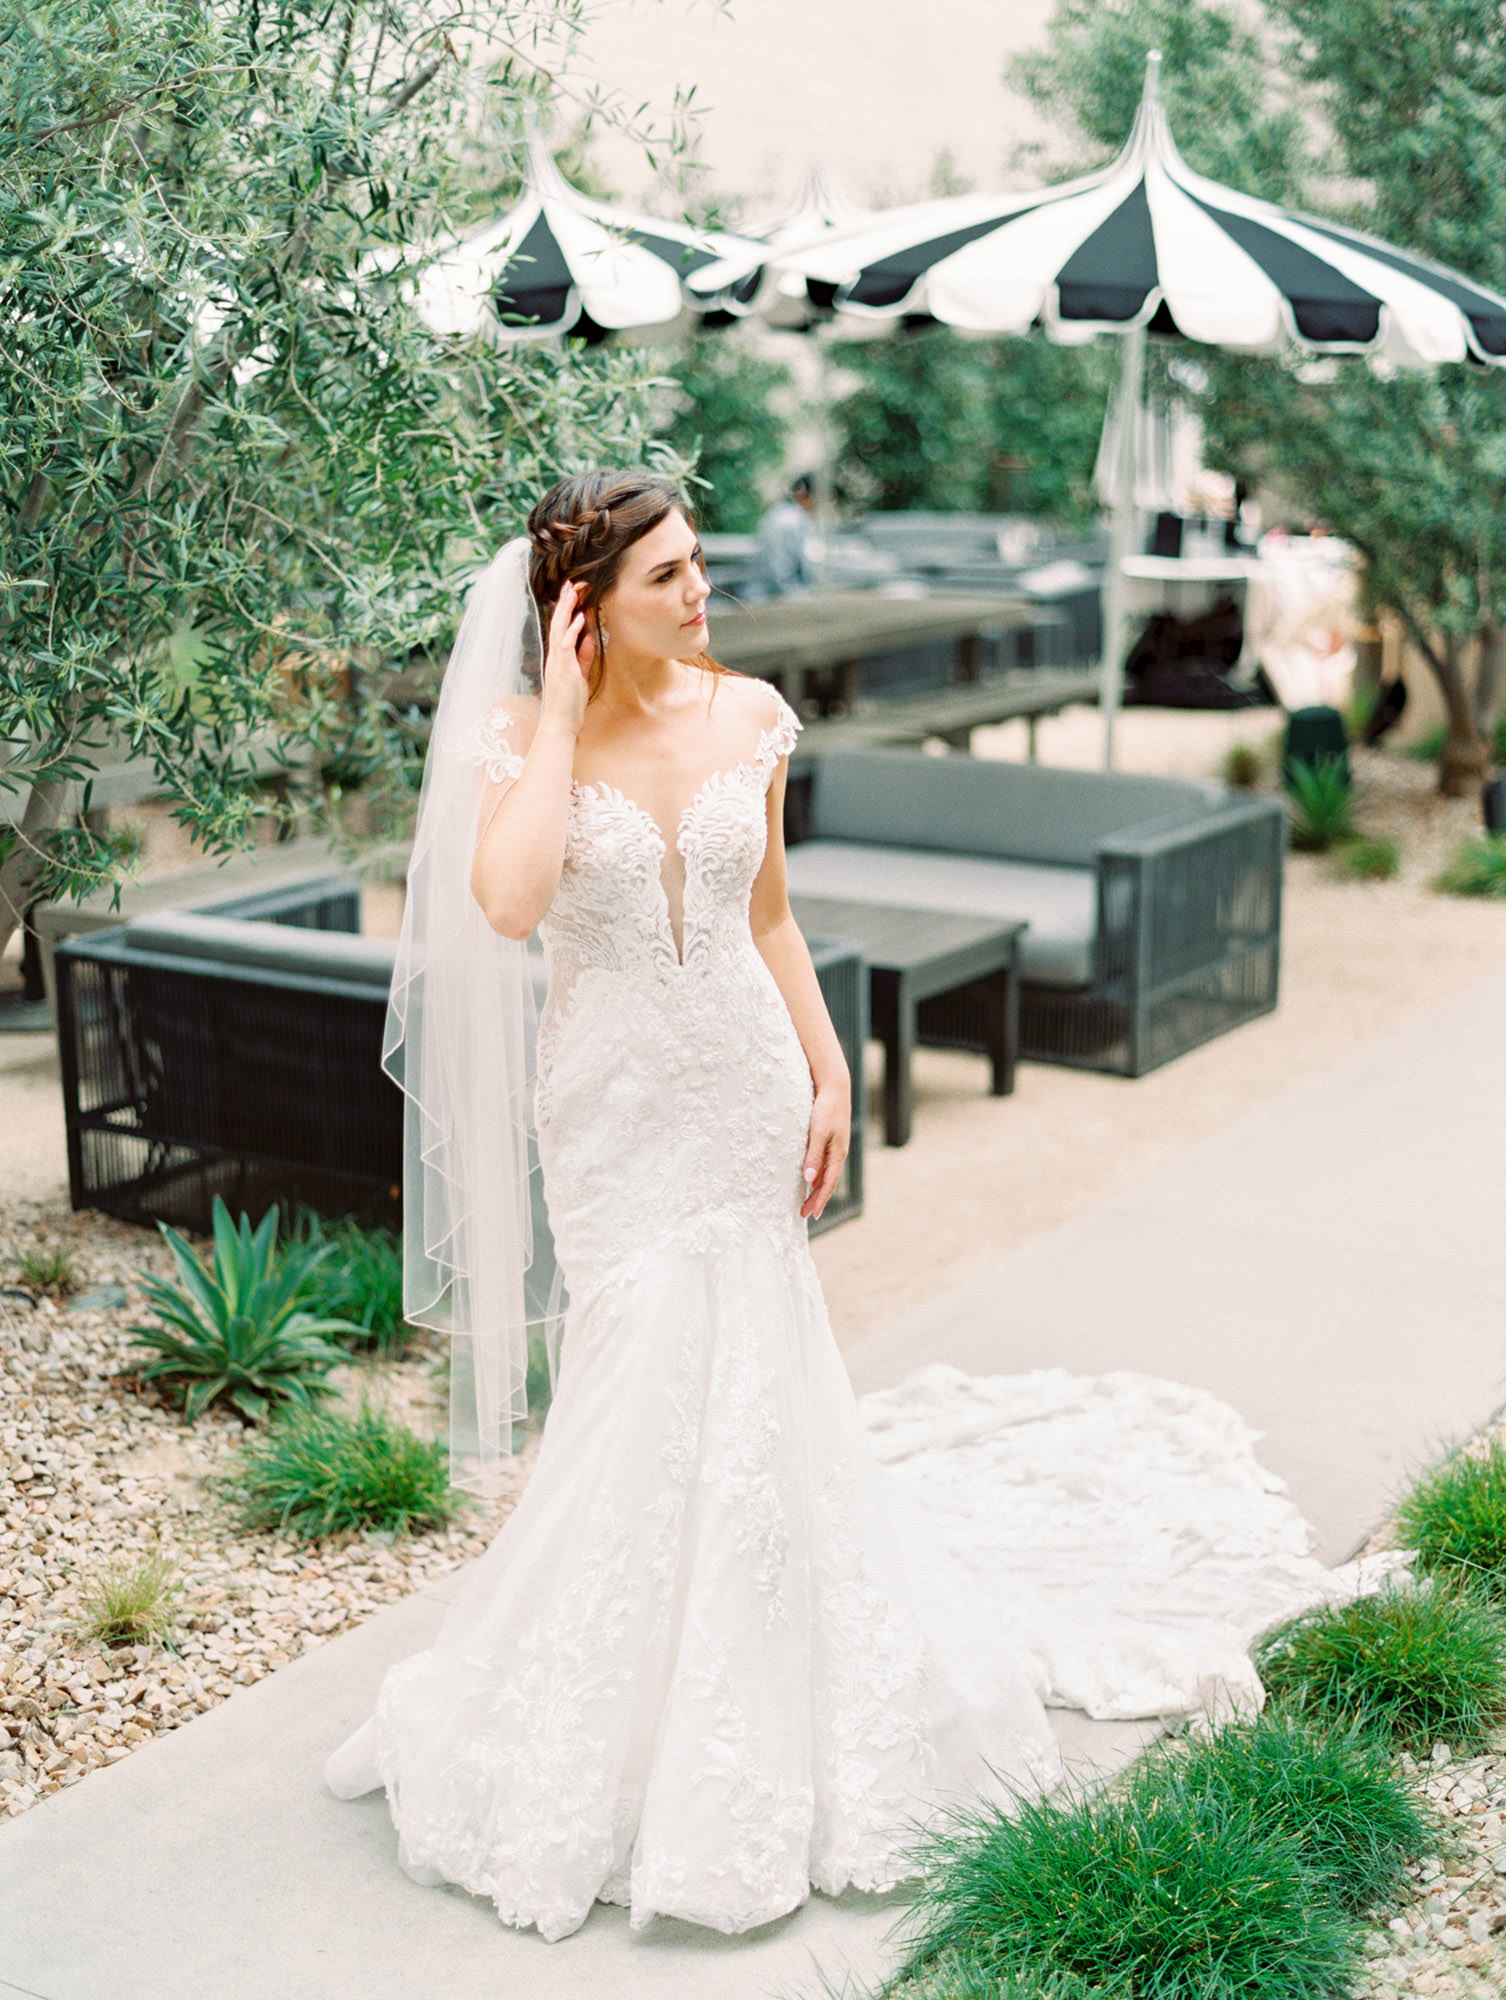 1104 cap sleeve lace dramatic drain with floral lace Martina Liana wedding dress in San Diego by Cavin Elizabeth - San Diego film photographer at The Guild Hotel